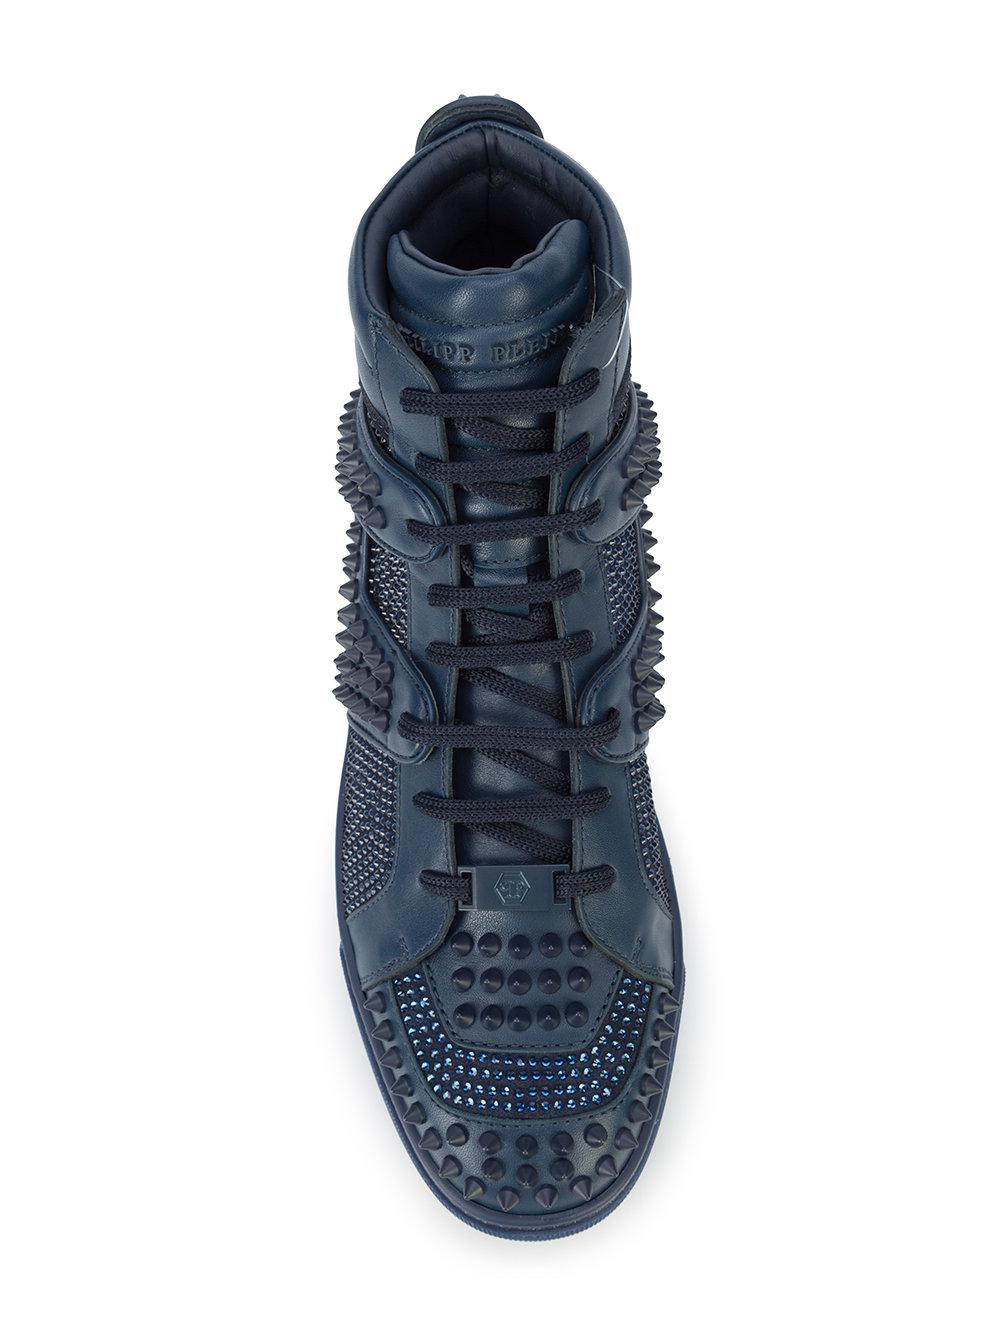 bb3f4bd917 Philipp Plein Don't Wake Me Up Hi-top Sneakers in Blue for Men - Lyst